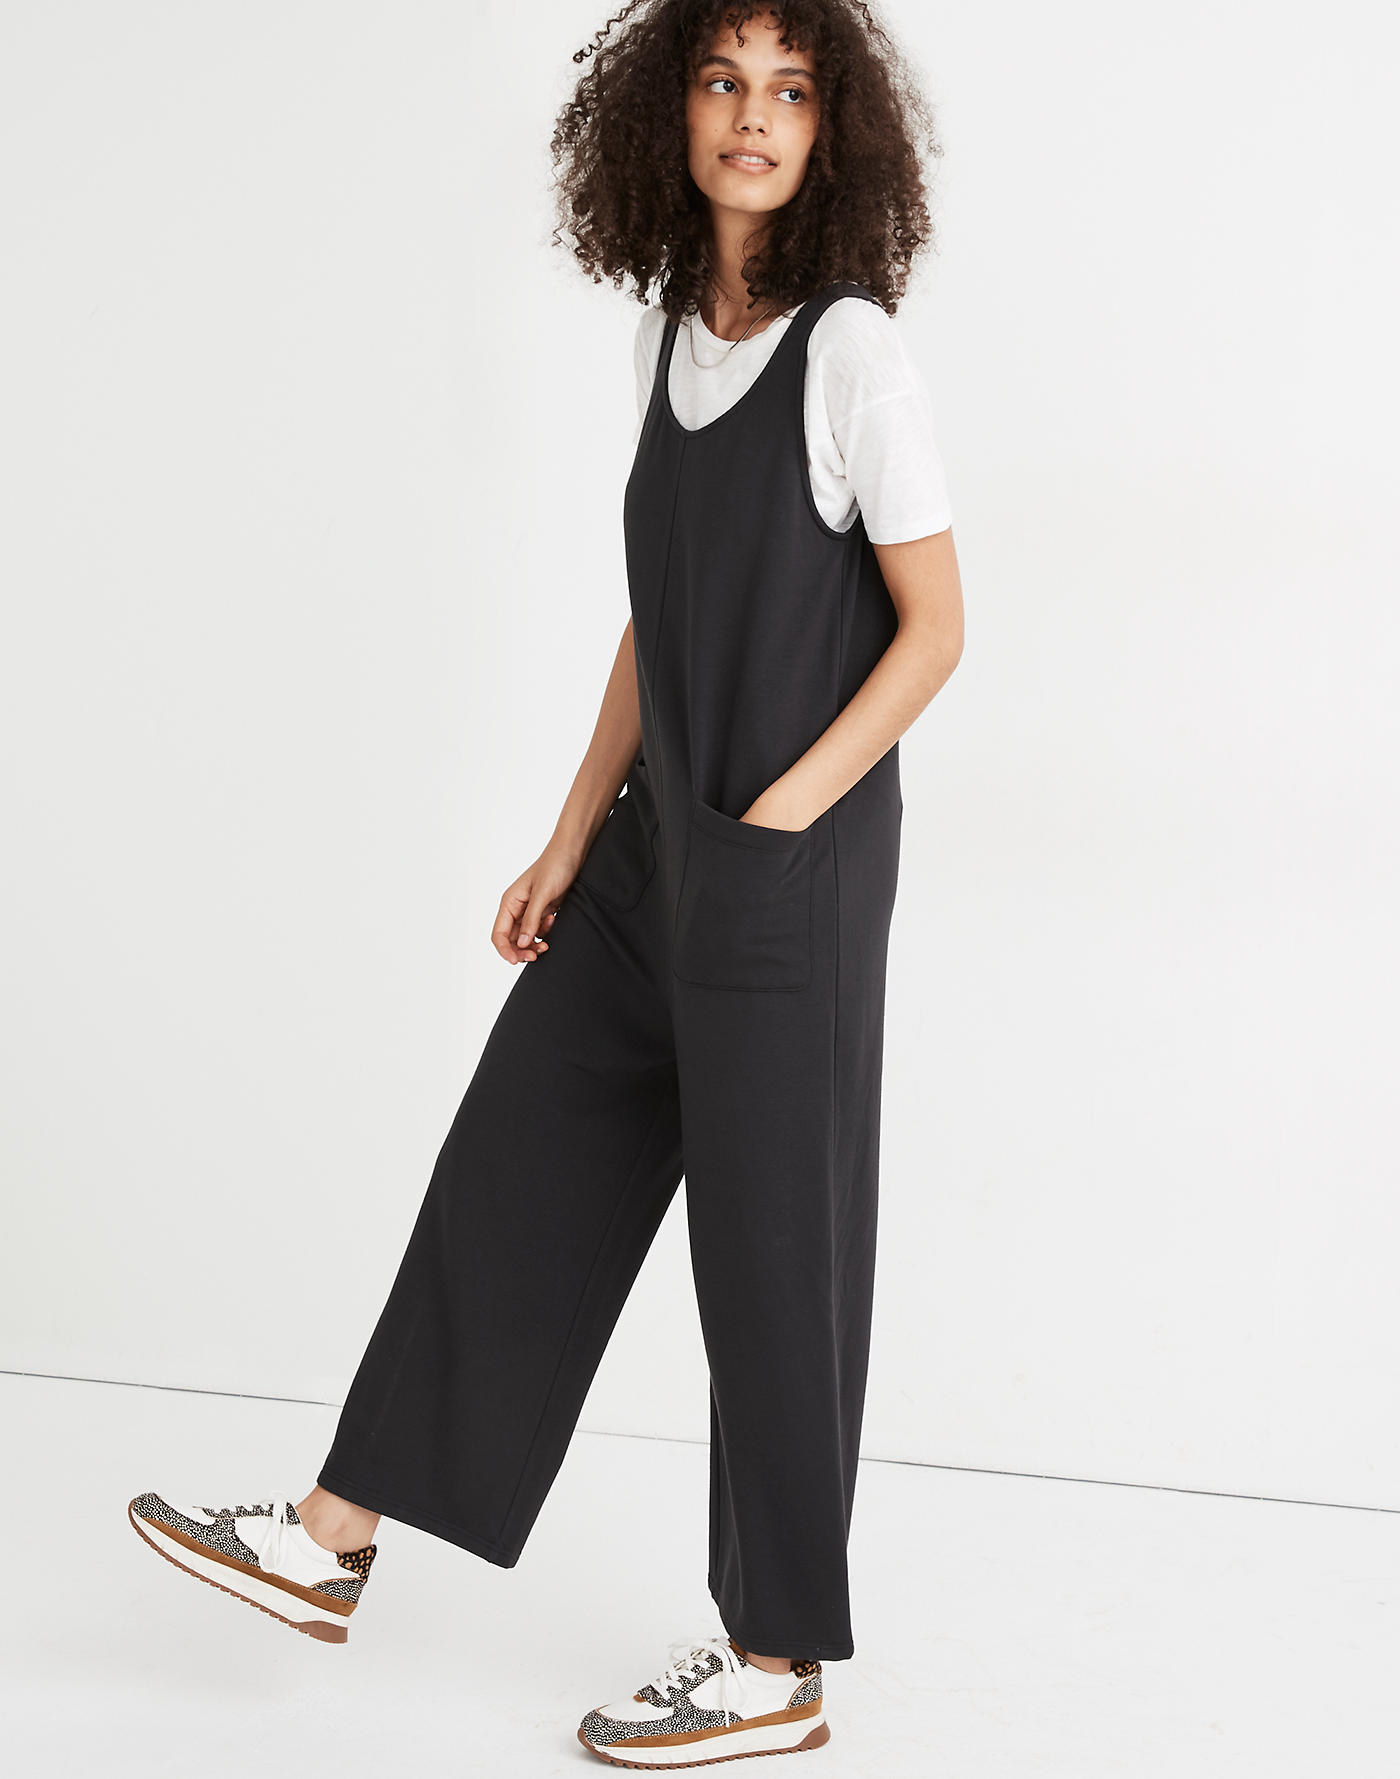 Model wearing short-sleeved jumpsuit with pockets